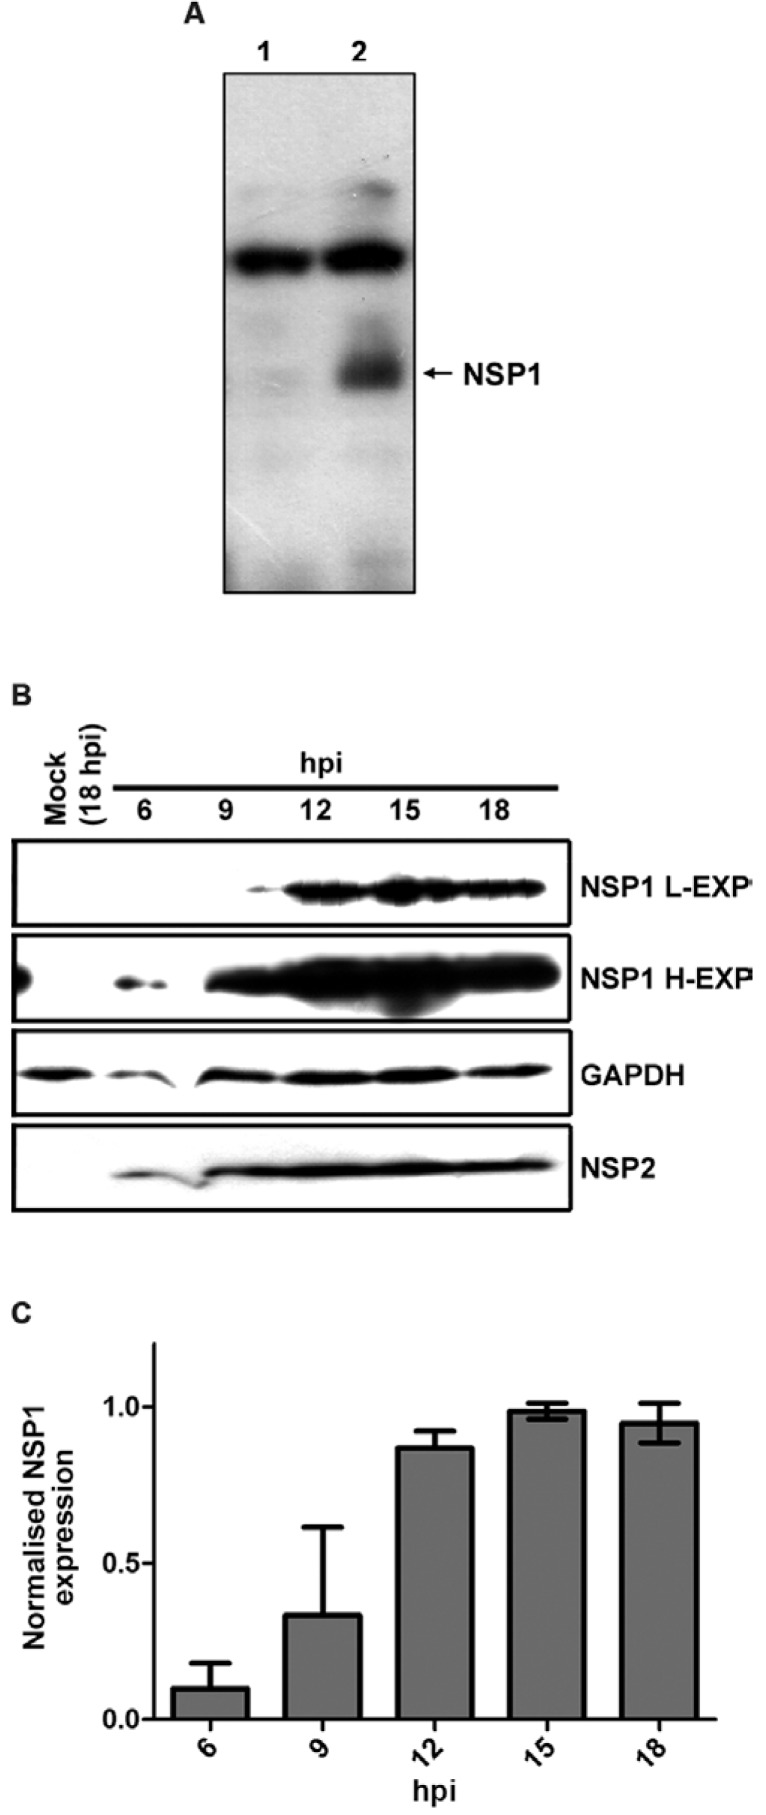 non-structural protein 1 (NSP1) has a low expression level that increases late in infection in rhesus rotavirus (RRV)-infected cells. MA-104 cells were mock-infected or infected with RRV at a multiplicity of infection of 10 and the cells were processed using Western blot analysis with anti-NSP1, anti-NSP2 and anti- glyceraldehyde-3-phosphate dehydrogenase (GAPDH) at different times post-infection (pi) (as indicated). The anti-NSP1 serum detected an intense cellular band in mock-infected cells (Lane 1, panel A), whereas a specific NSP1 band was detected only in RRV-infected cells (A). The results of one representative WB assay are shown (B), with two lengths of film exposure [low (NSP1 L-EXP) or high (NSP1 H-EXP)], as well as quantitative analyses of three independent experiments normalising the band intensities of NSP1 to the loading control GAPDH (C). Standard deviations are shown above each bar. hpi: hours pi.